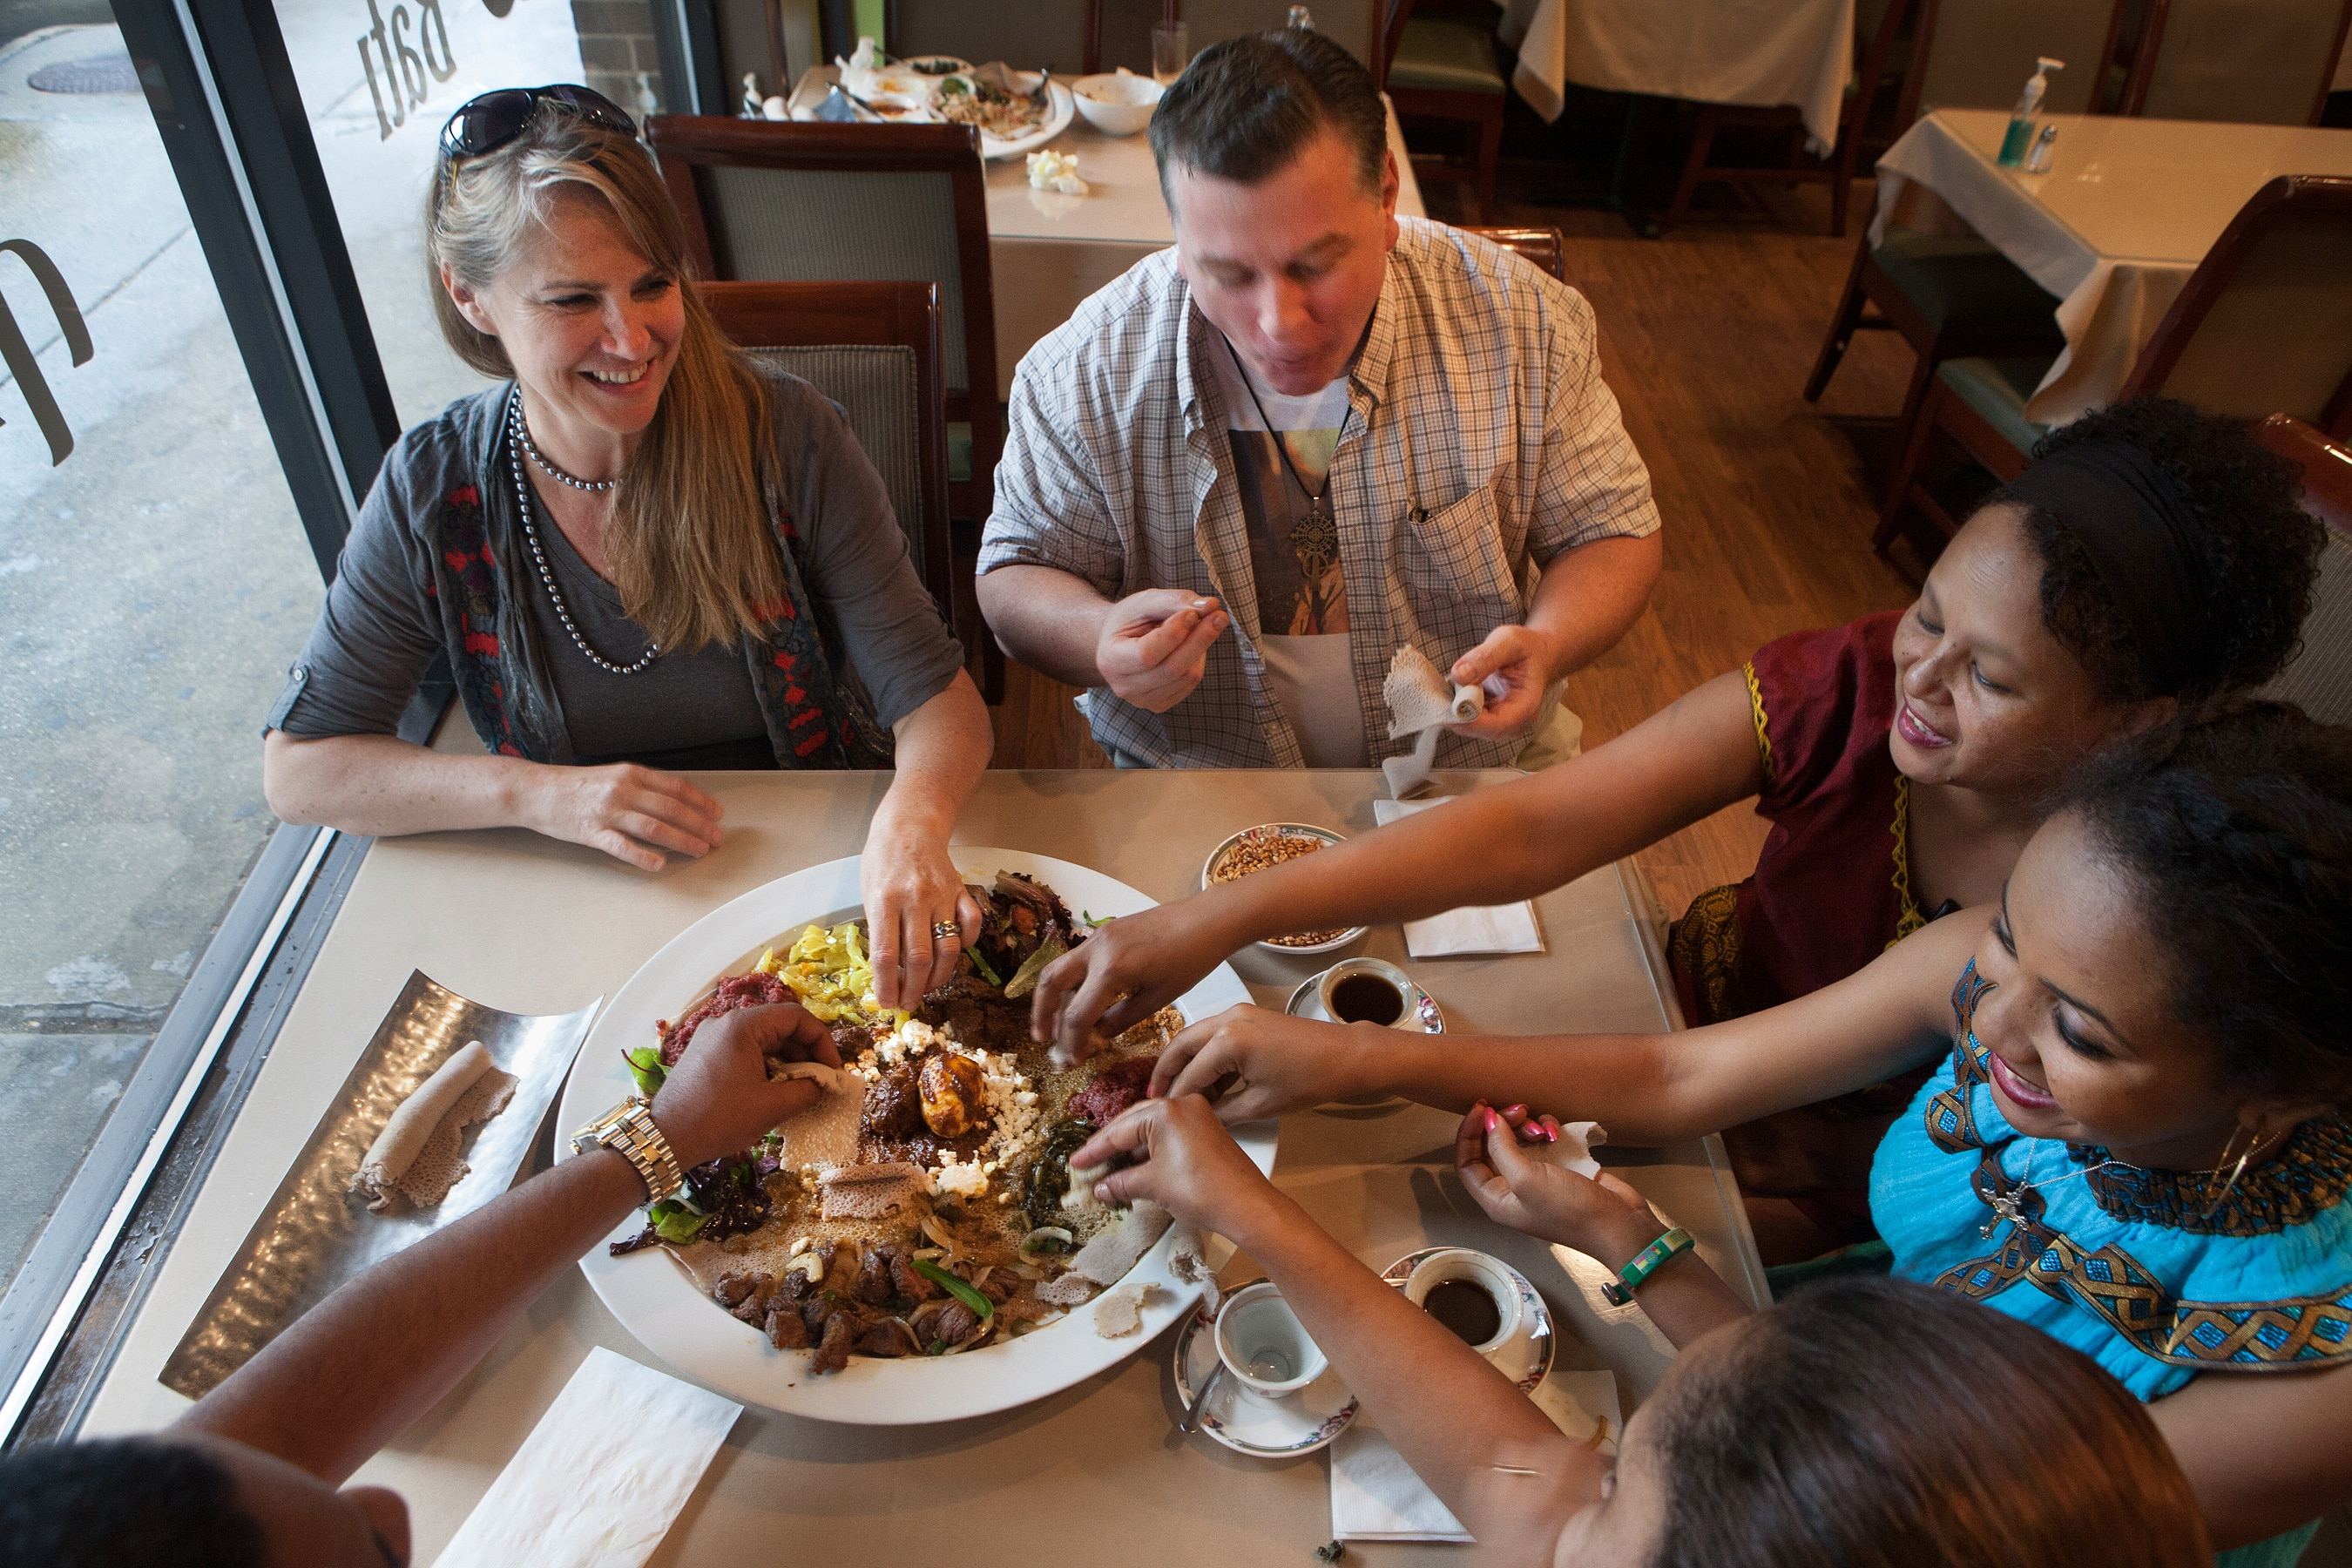 Ethiopians build largest u s community in d c shareamerica for Eating table